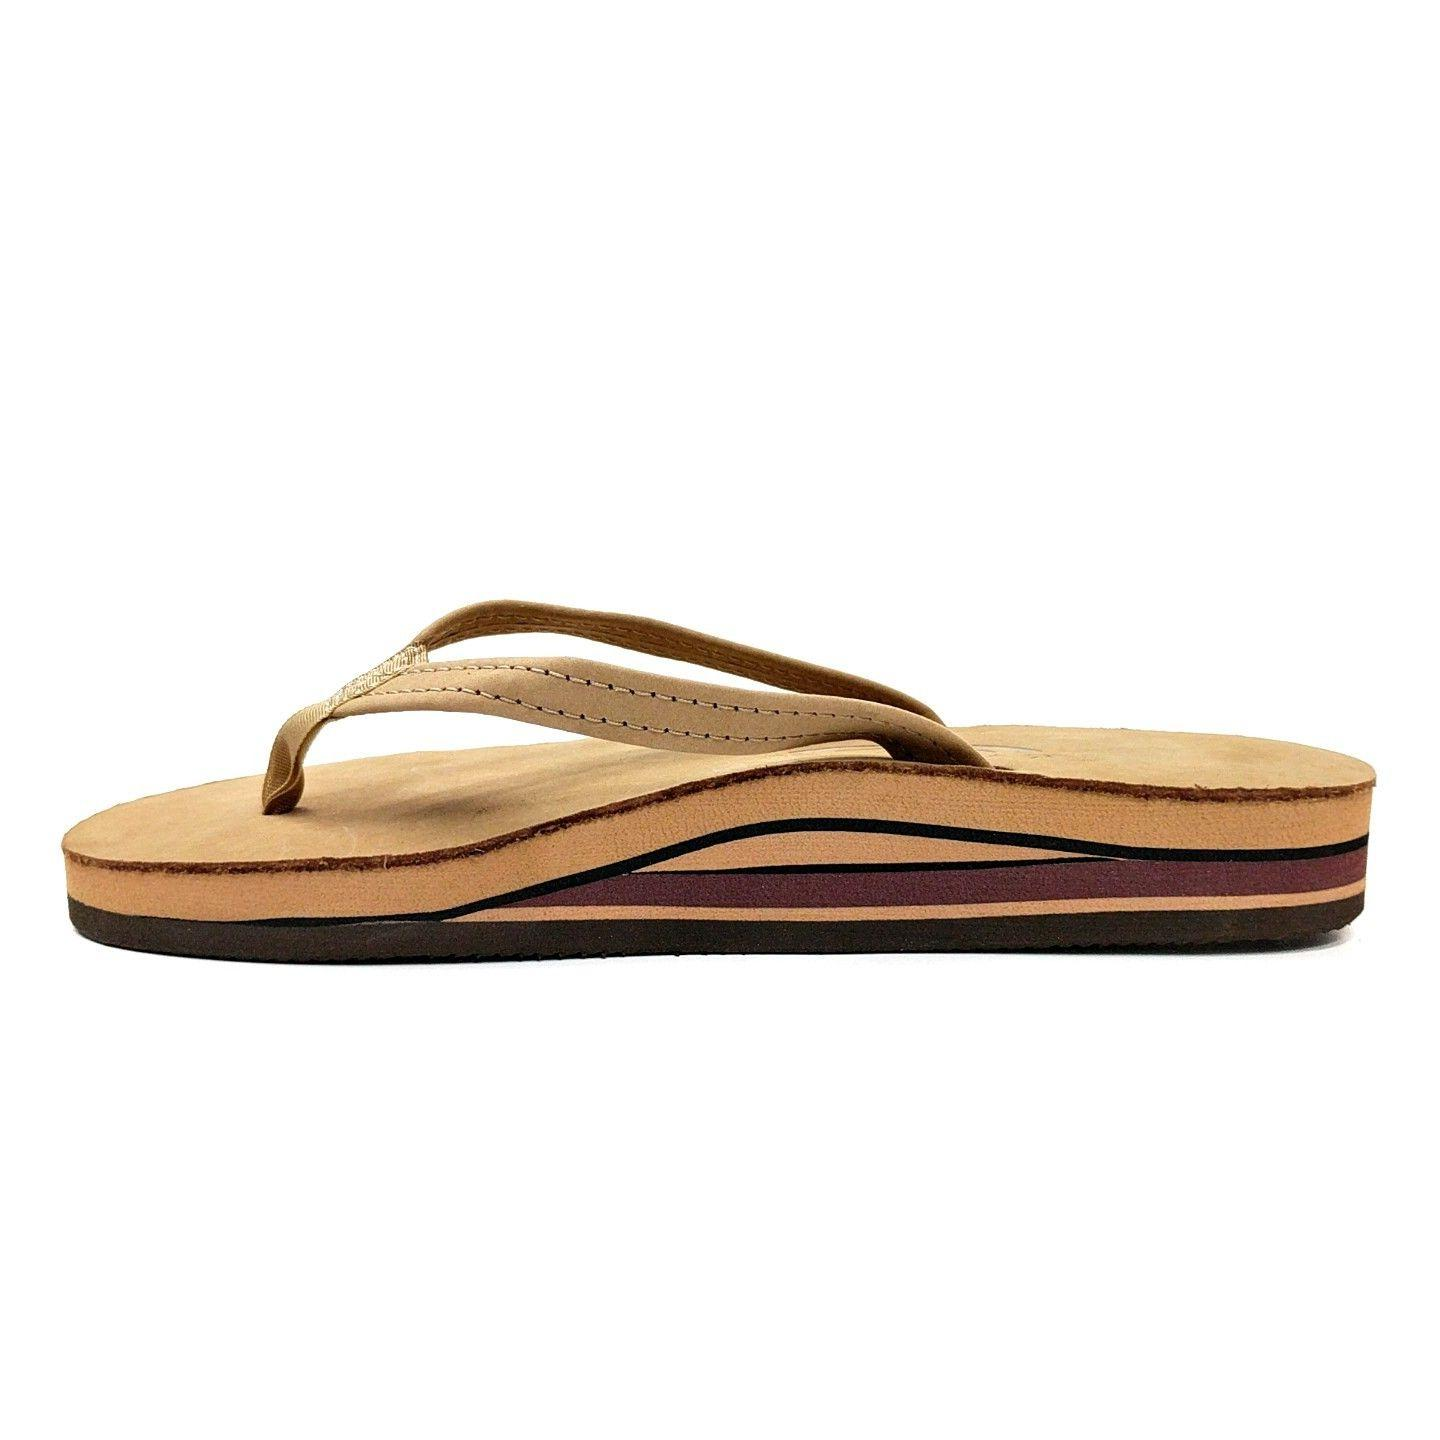 NEW WOMEN SANDAL 302 ALTSN SIERRA DOUBLE STRAP